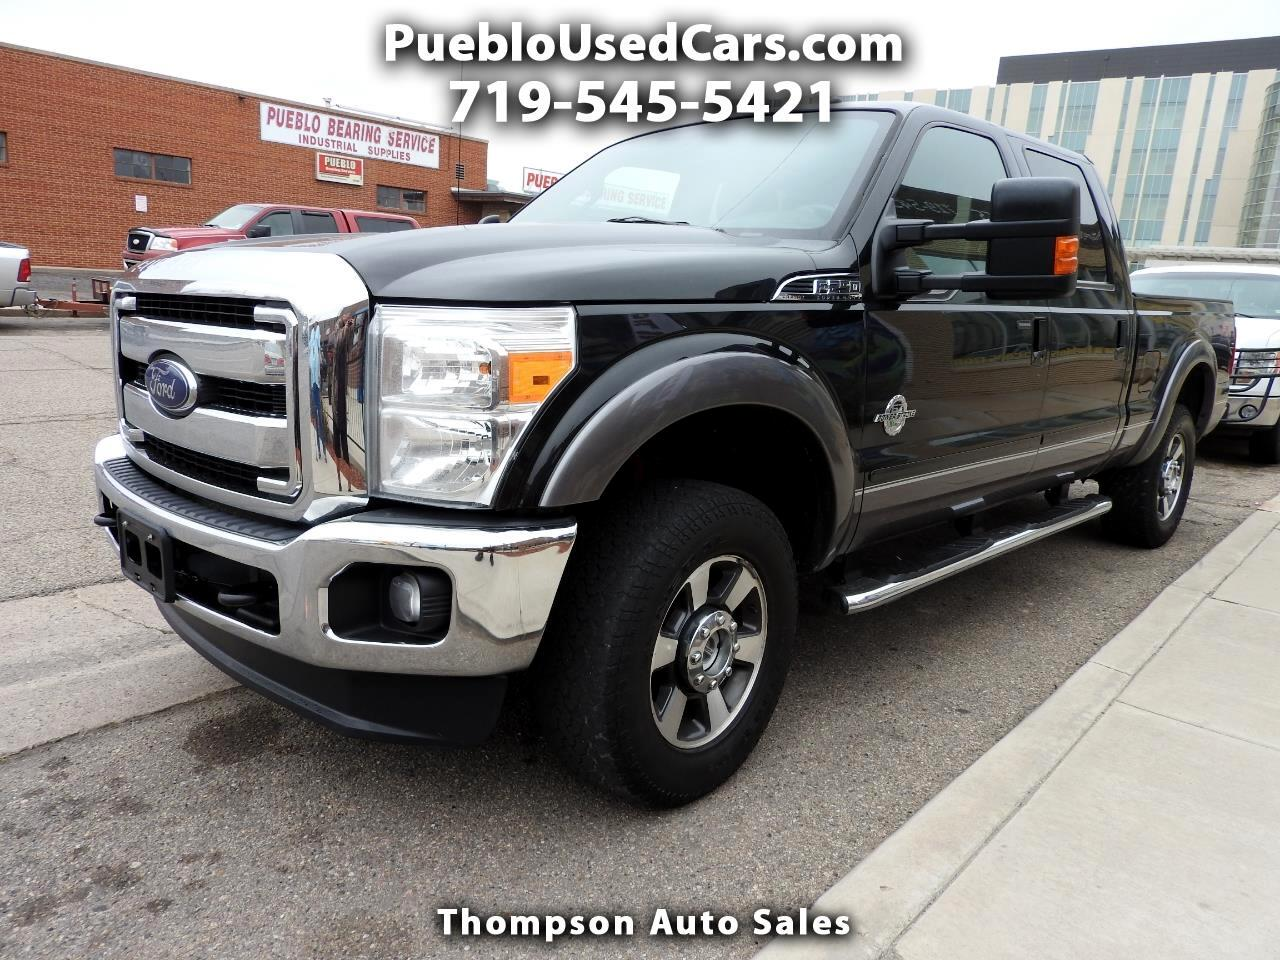 2014 Ford F-250 SD Lariat Crew Cab Long Bed 4WD